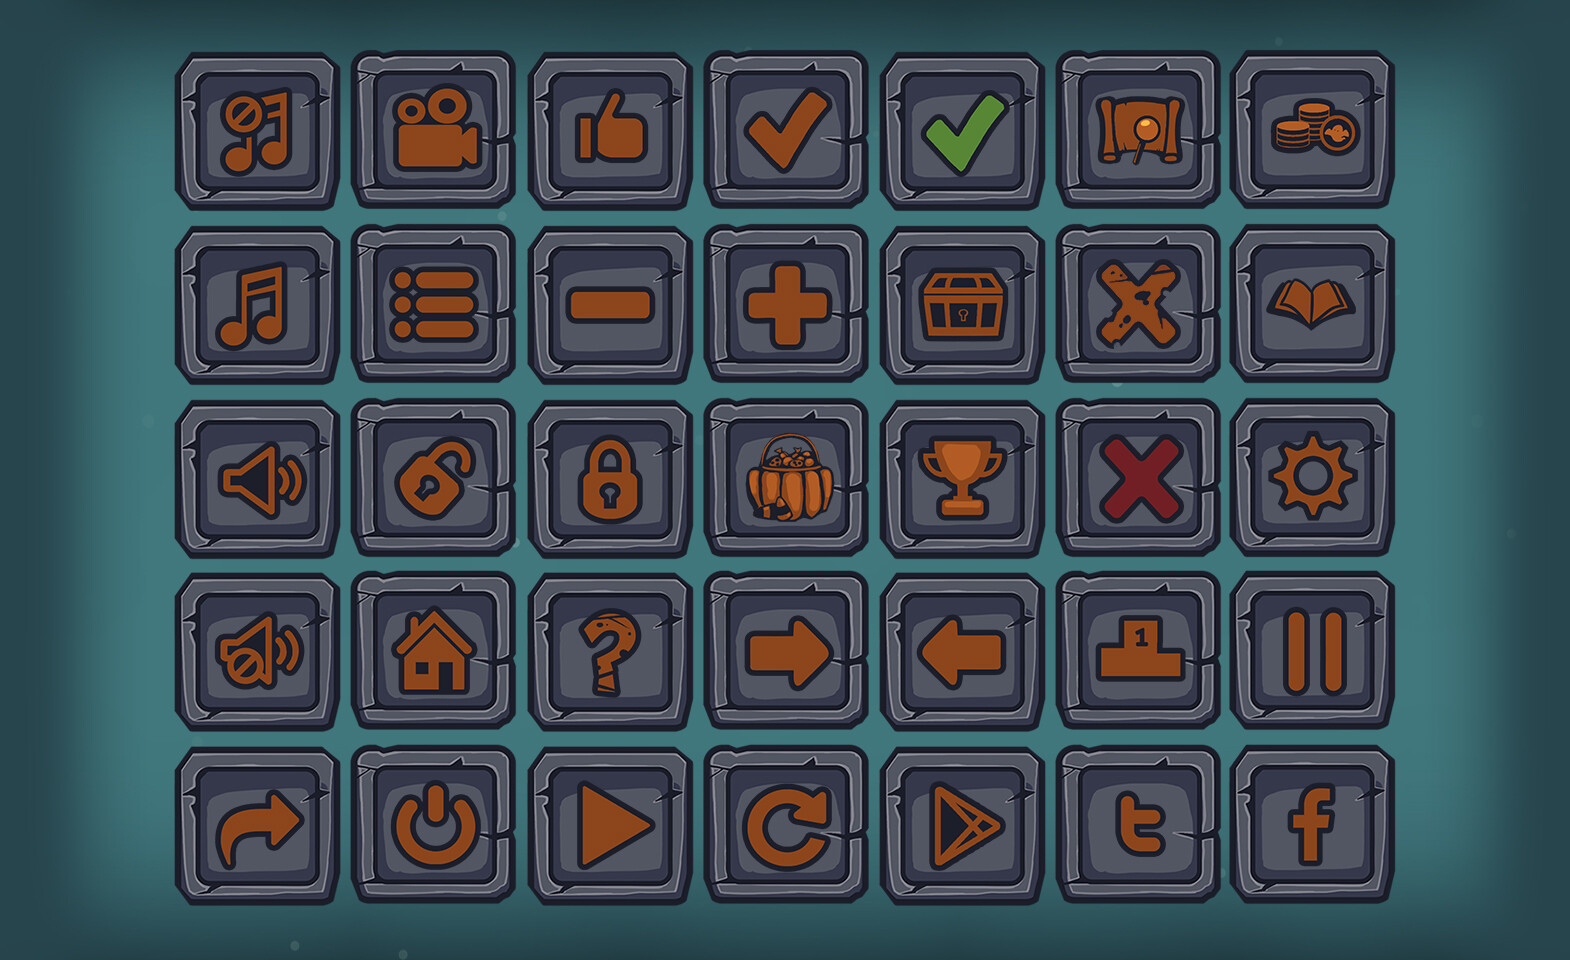 Moon tribe buttons square v1